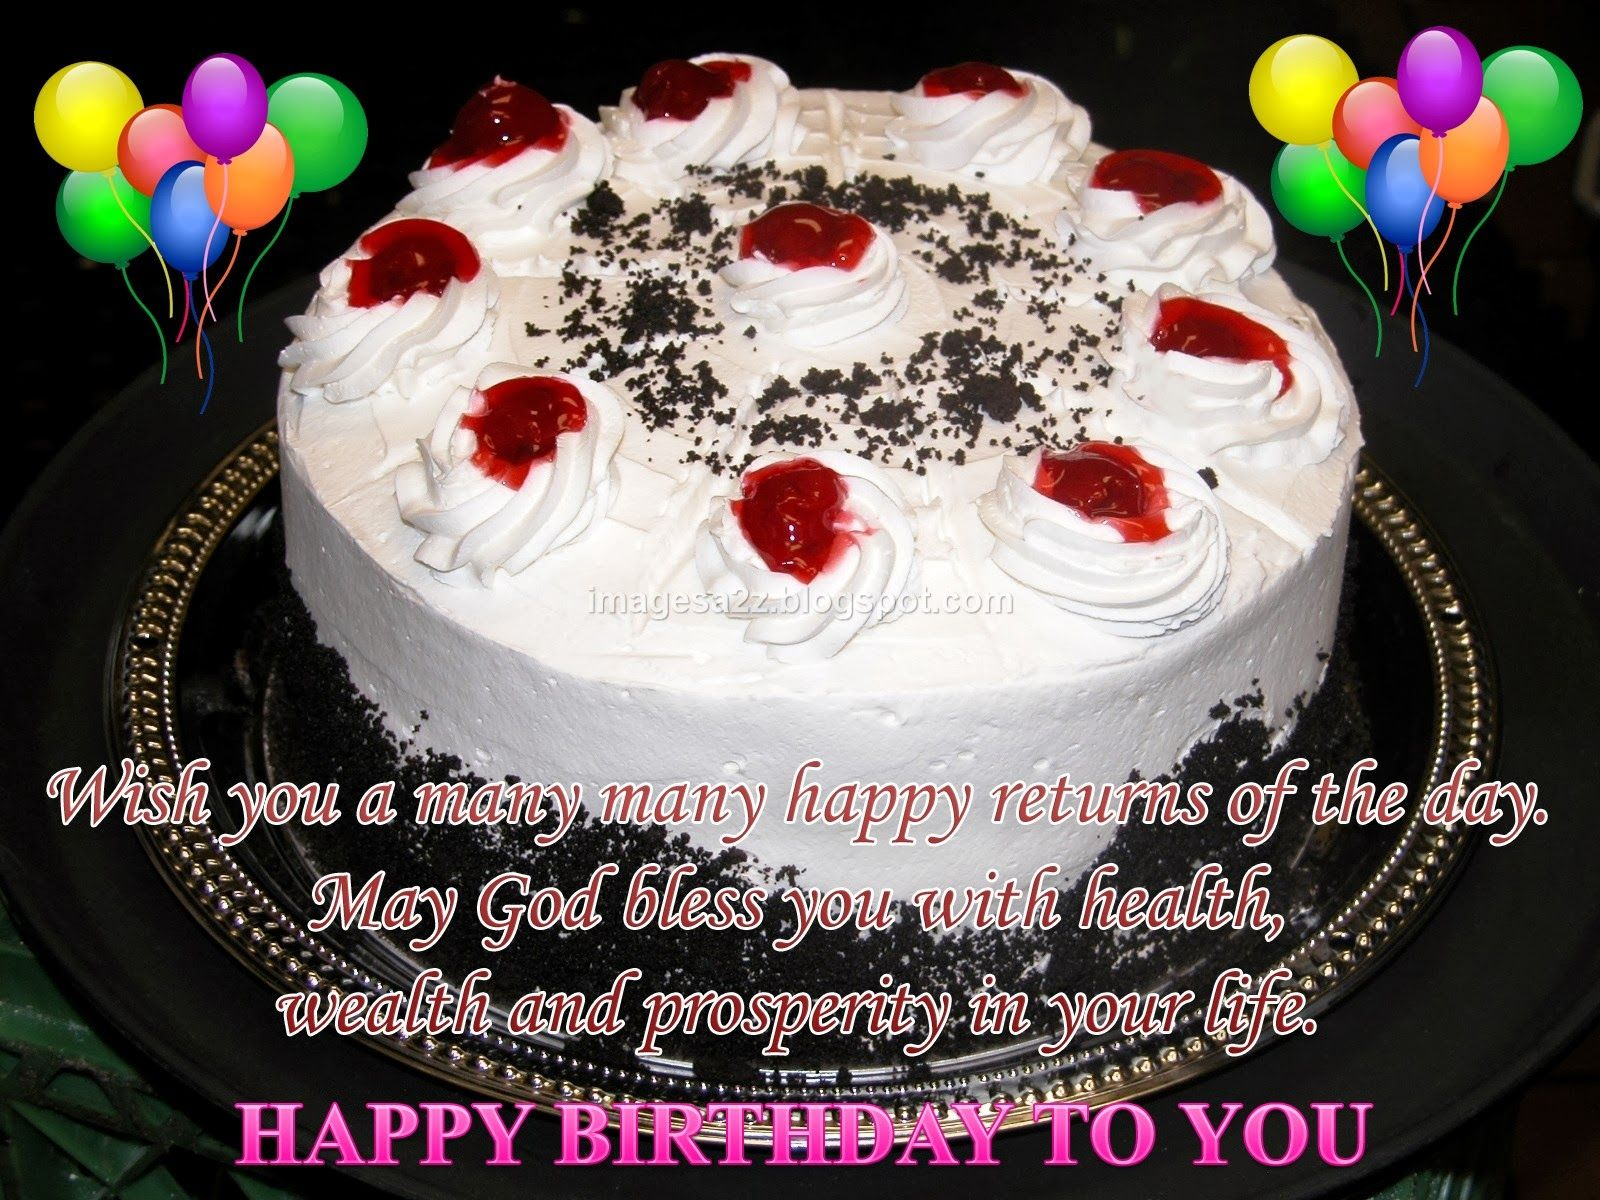 happy birthday quotes for brother with cake happy birthday on birthday cake photo to brother